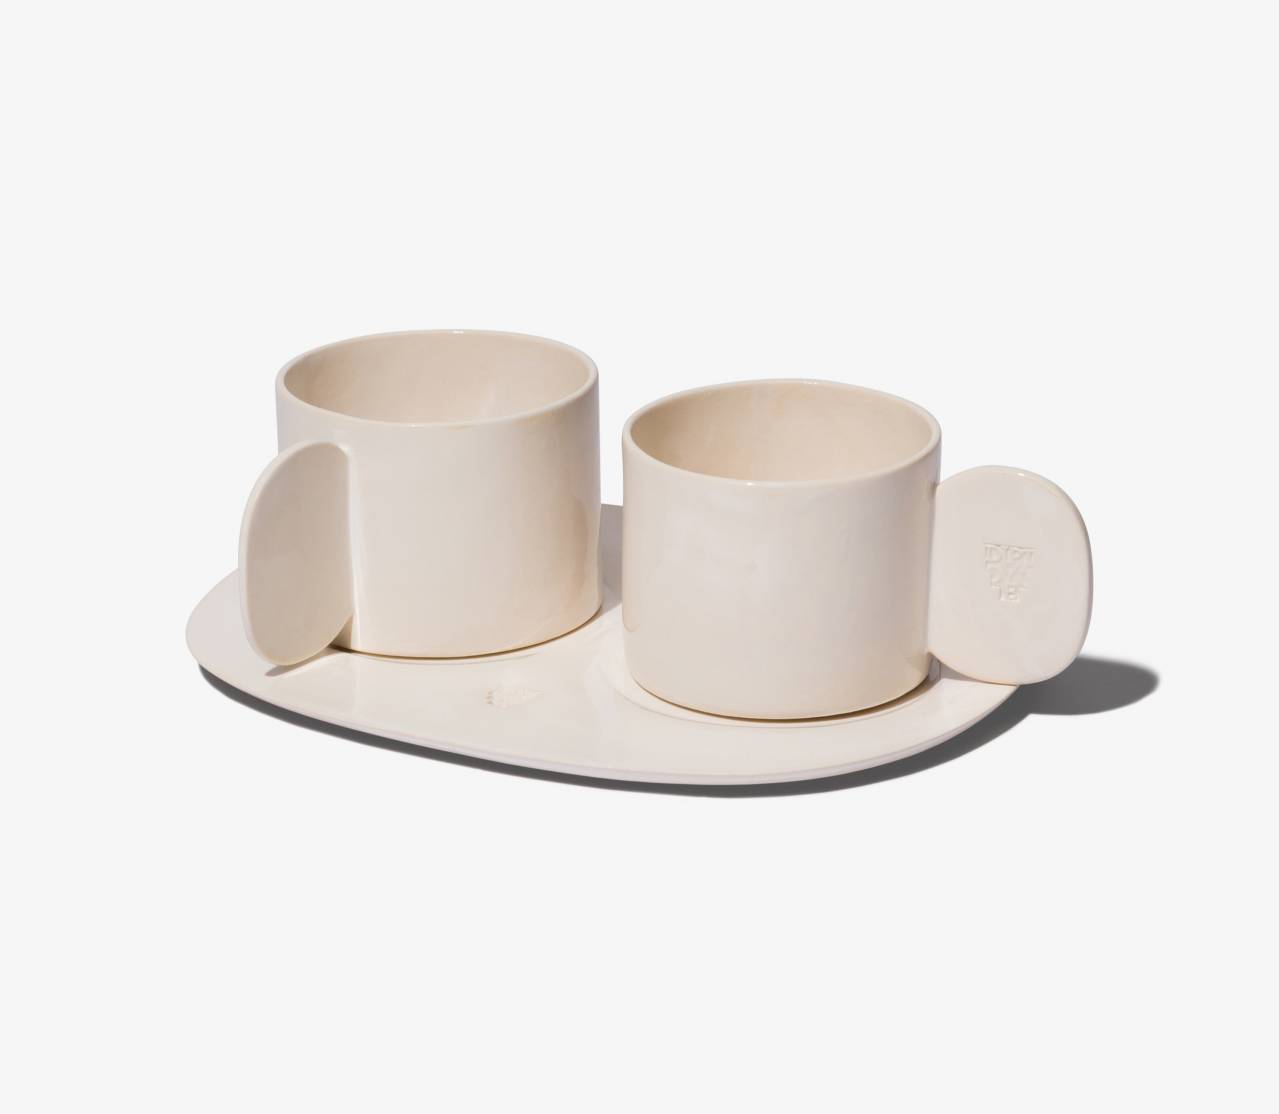 Tasse coupelle duo Toma Block 1PM-1.jpg